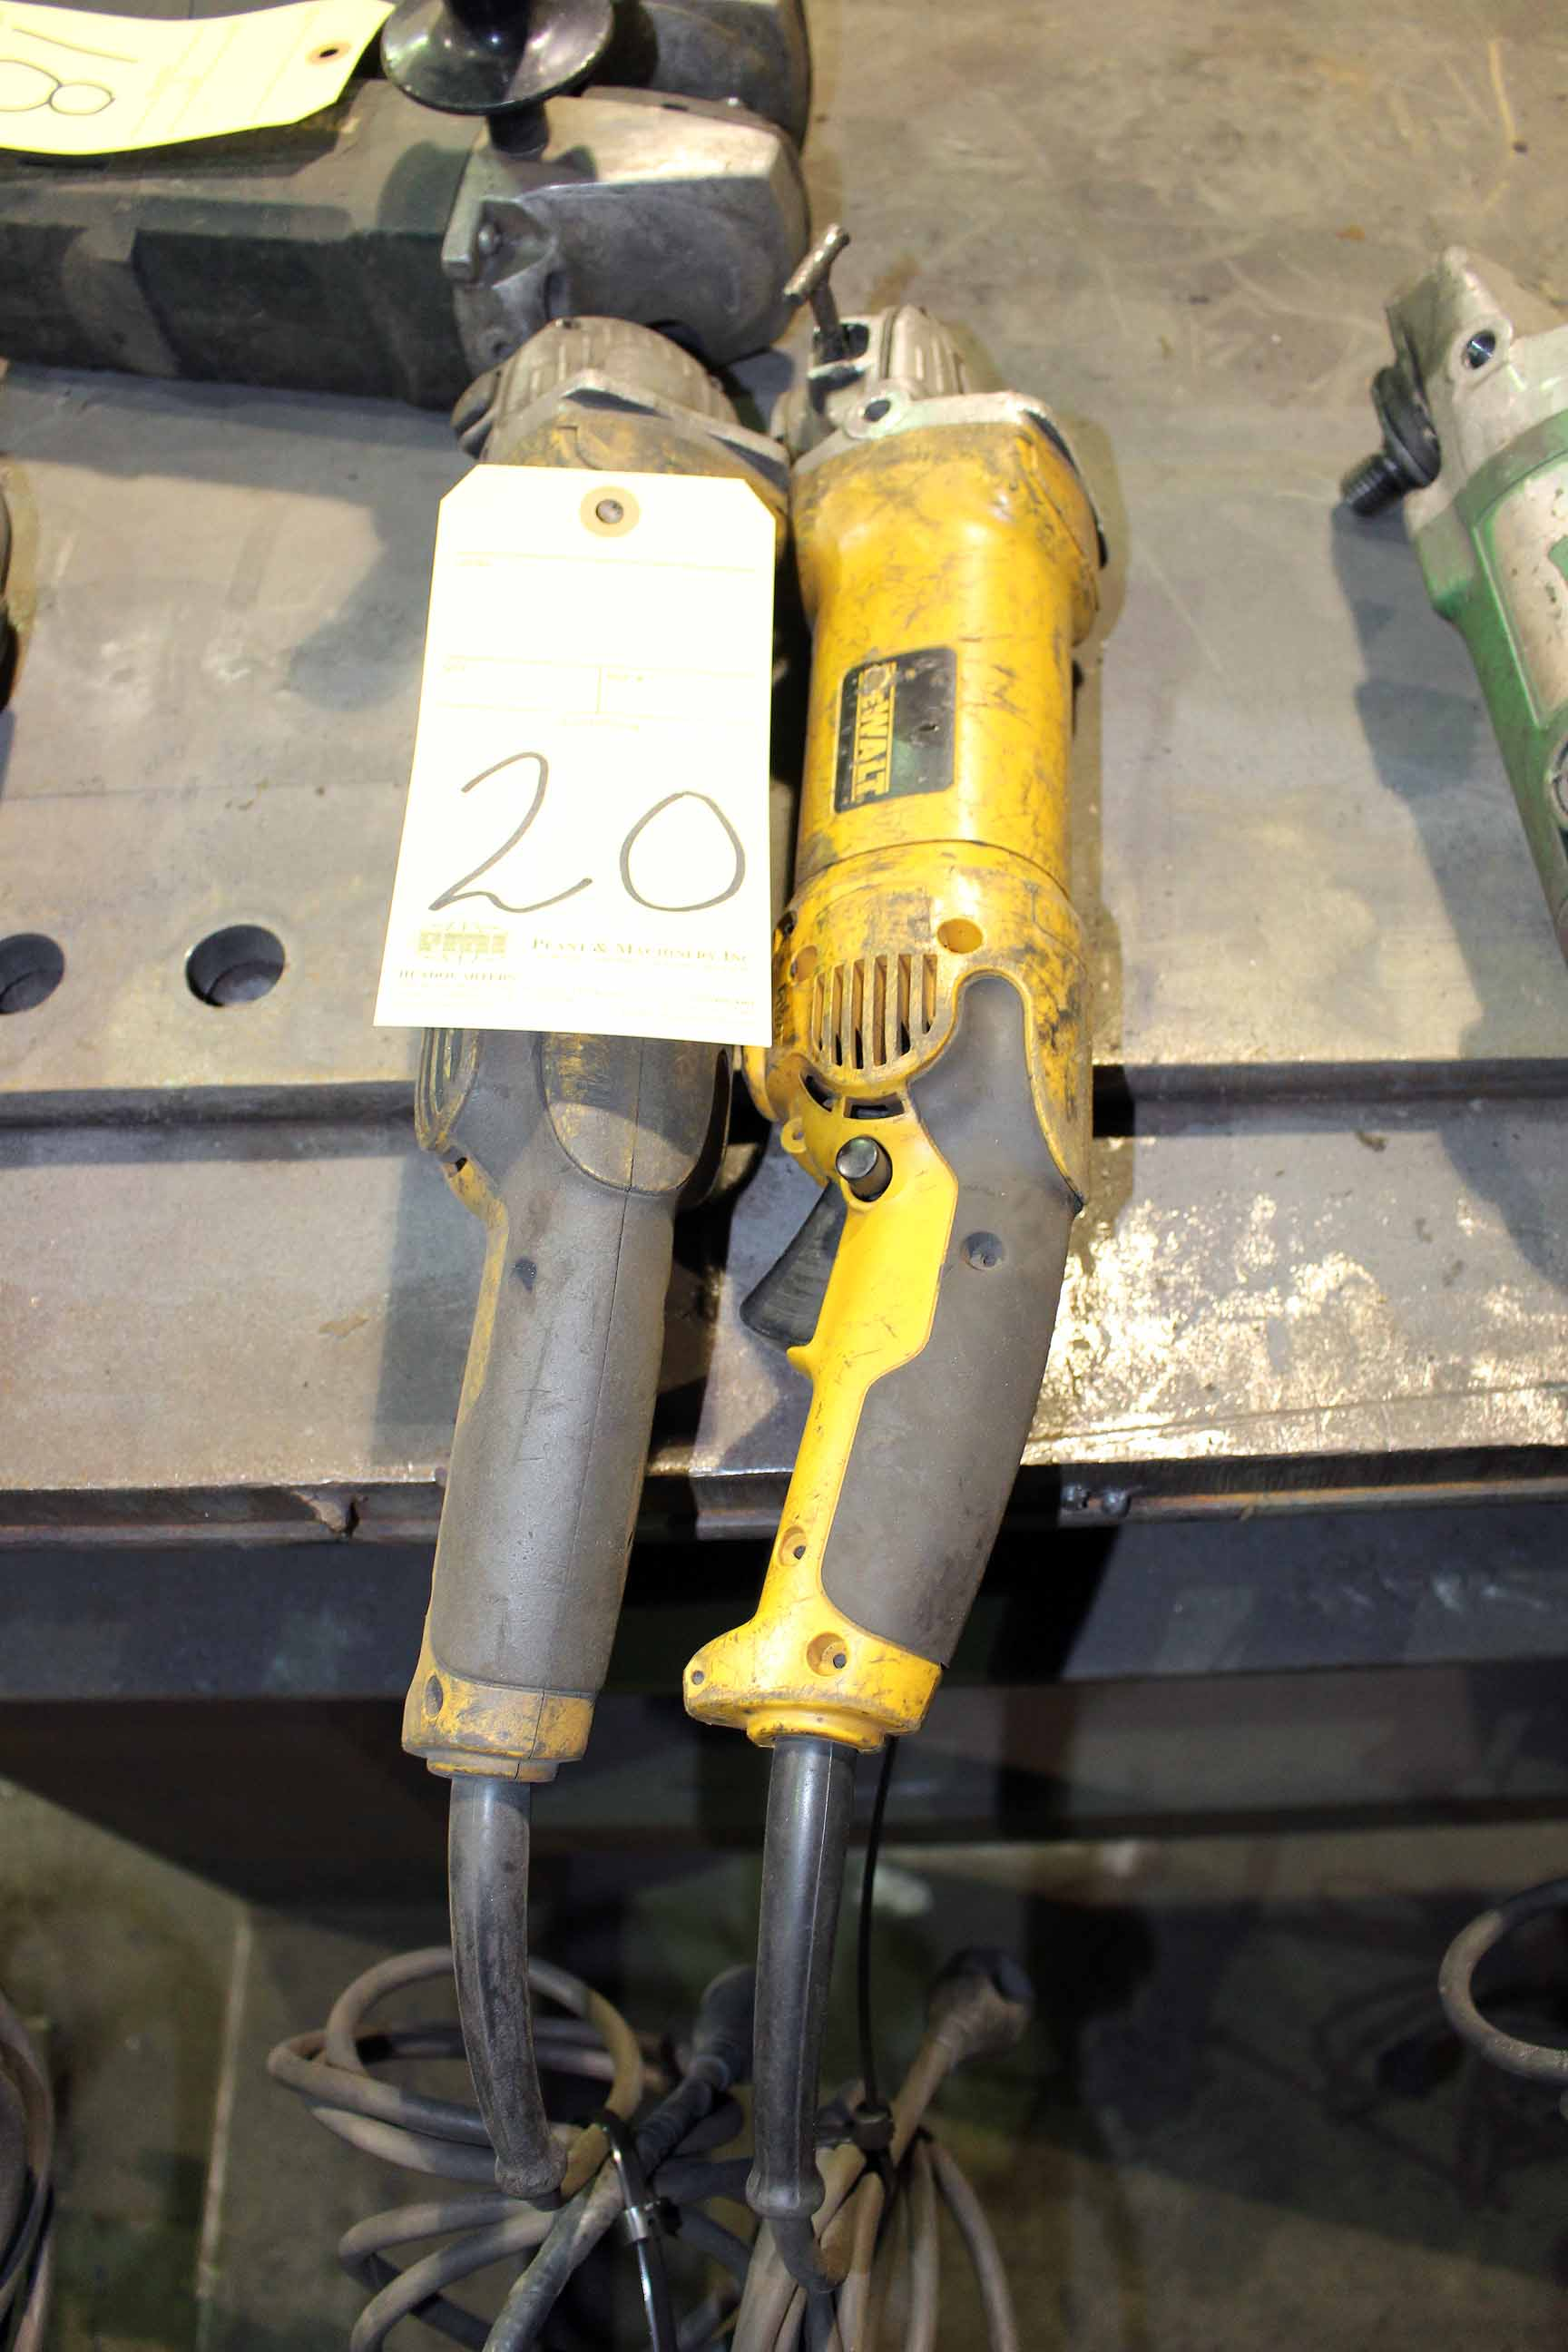 Lot 20 - LOT OF ELECTRIC ANGLE GRINDERS, 4""